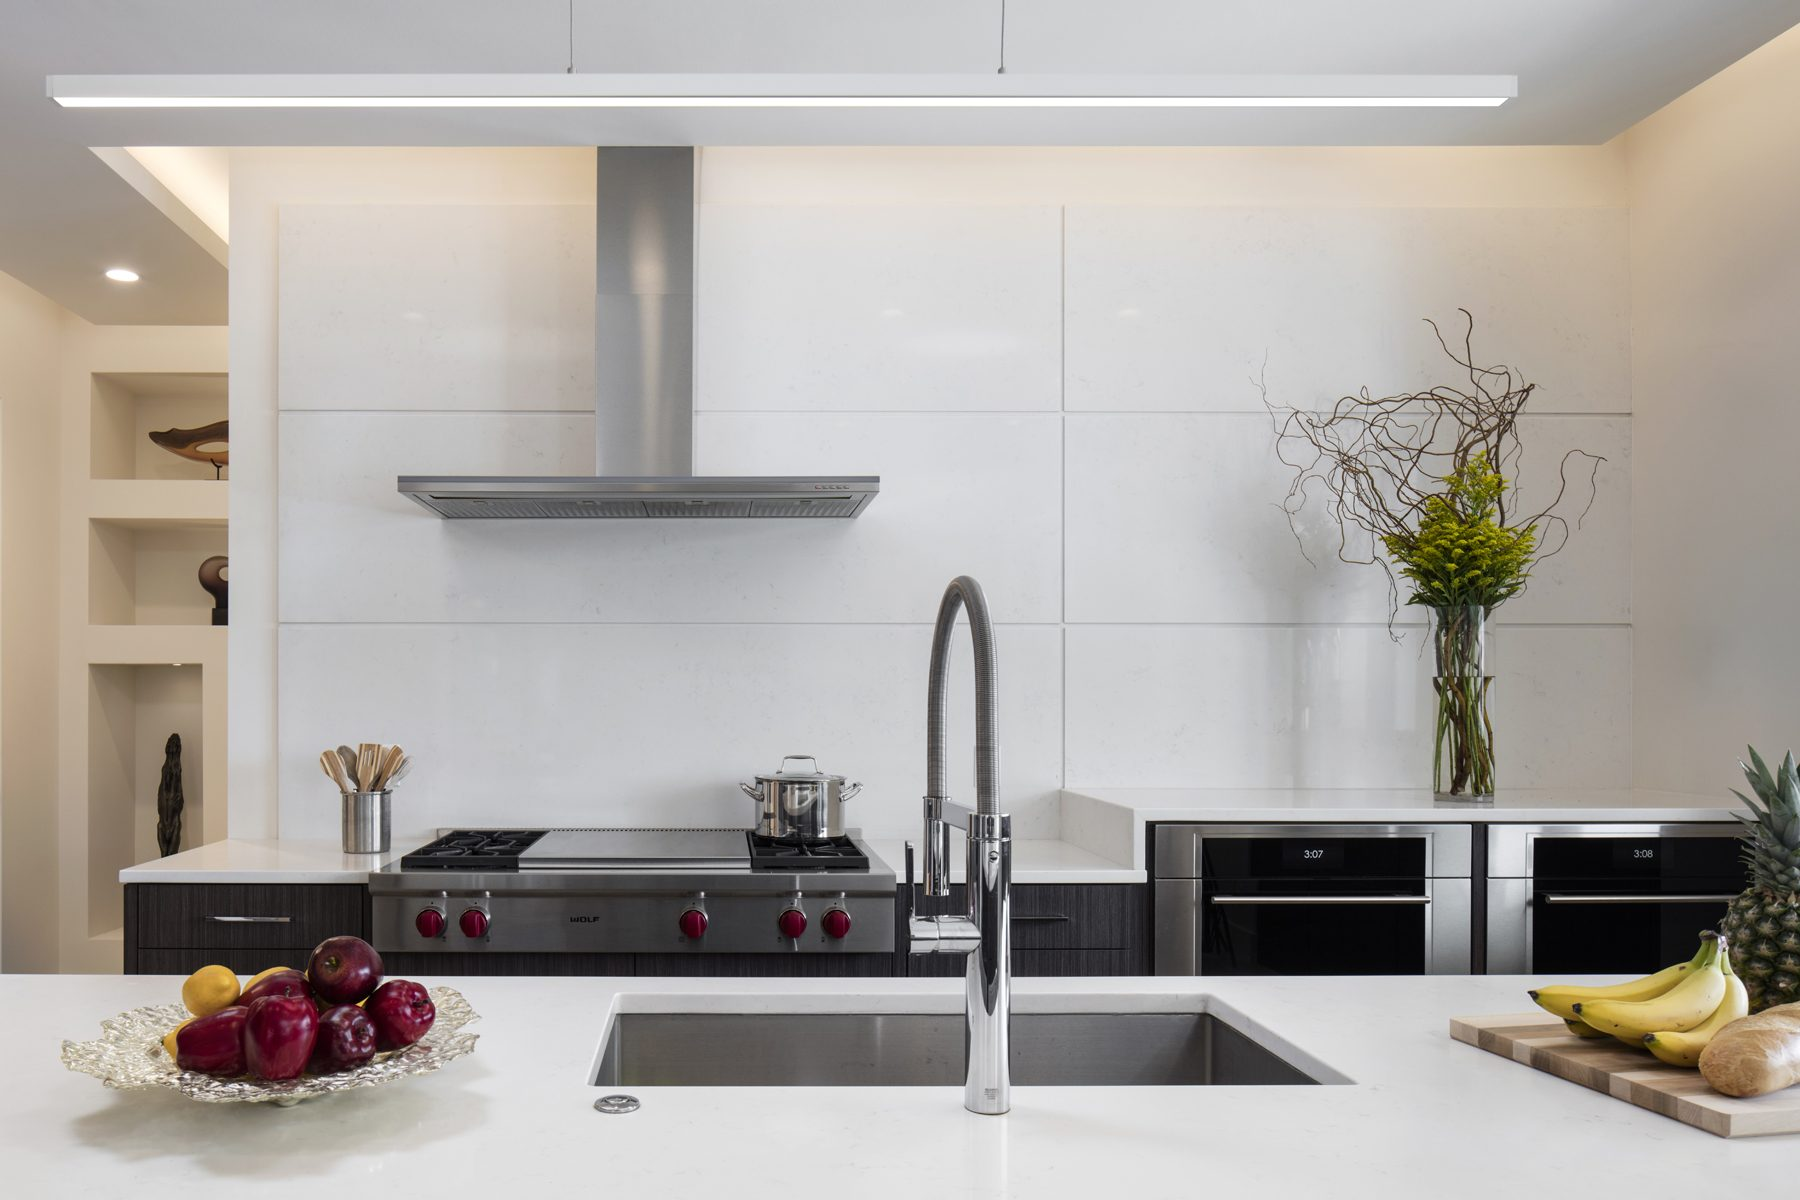 5 Unique Kitchen Backsplash Ideas For Your Custom Kitchen Design Phil Kean Kitchens